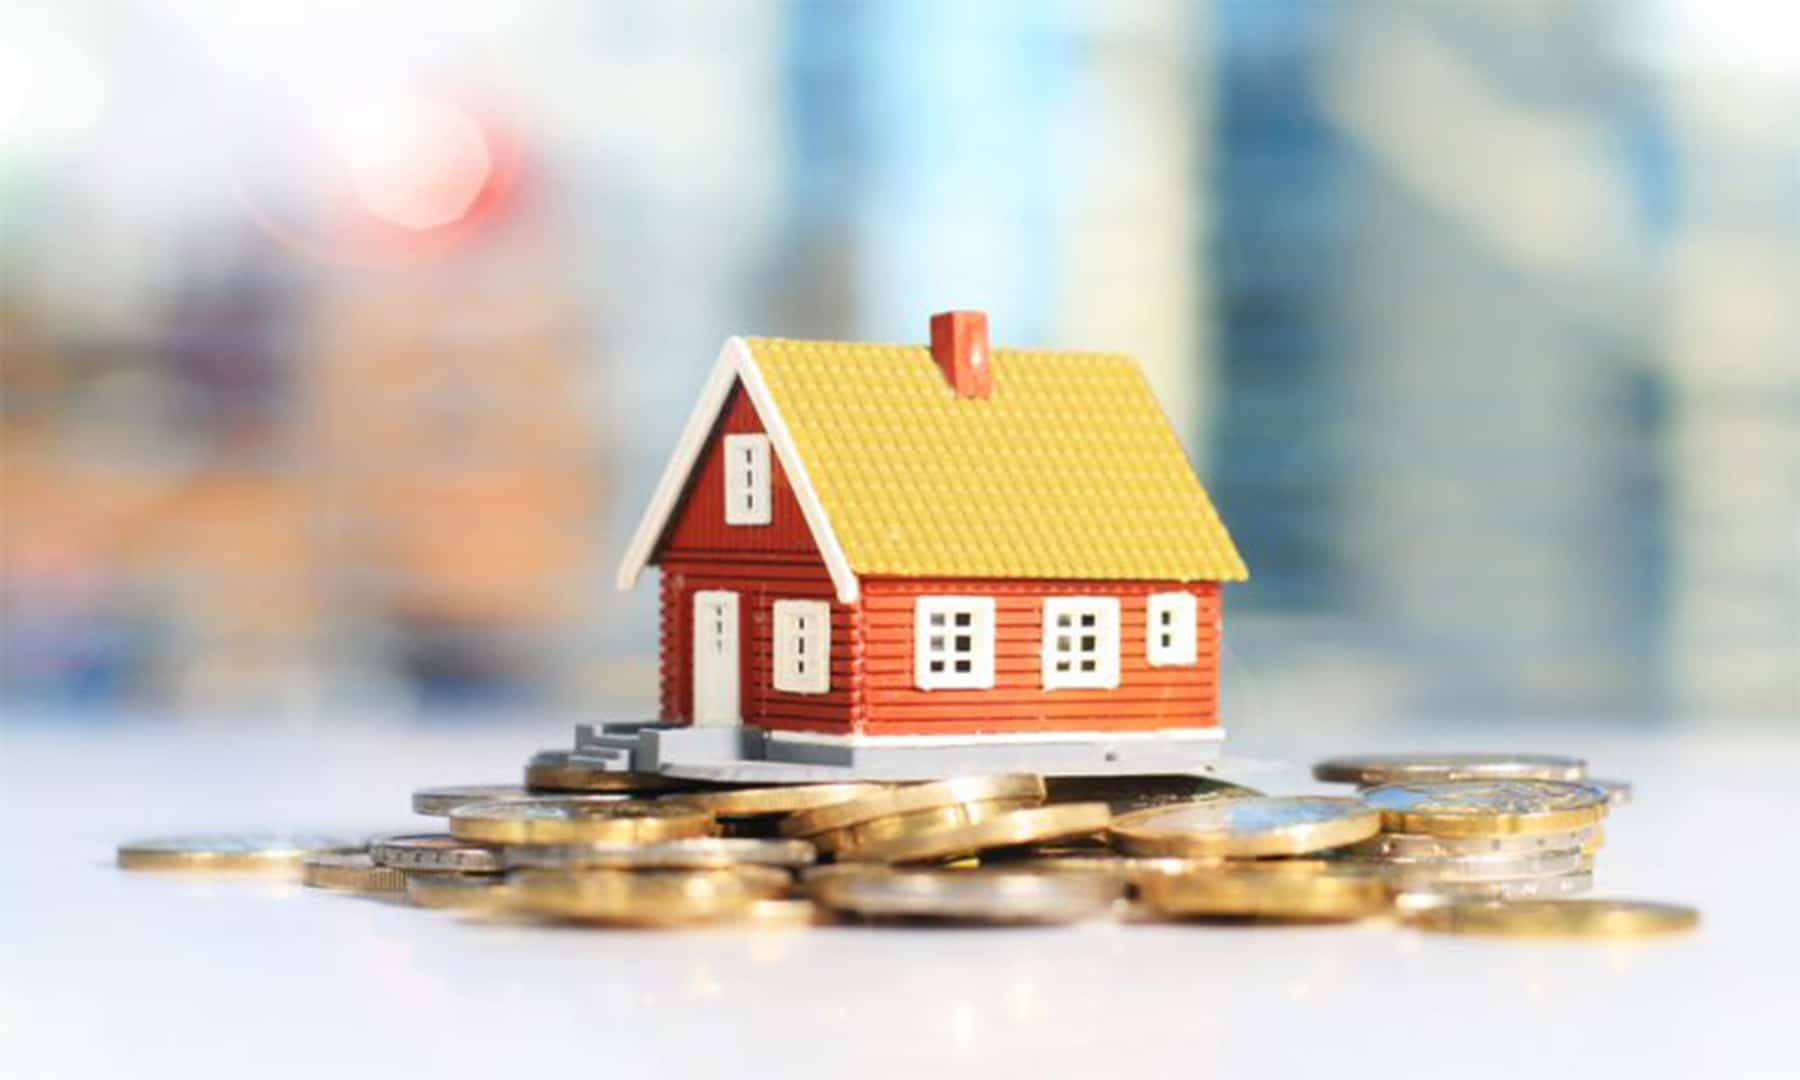 https://hartpartners.com.au/wp-content/uploads/2018/06/HartPartners-What-The-Super-Housing-Measures-Mean-for-SMSFs-768x461.jpg